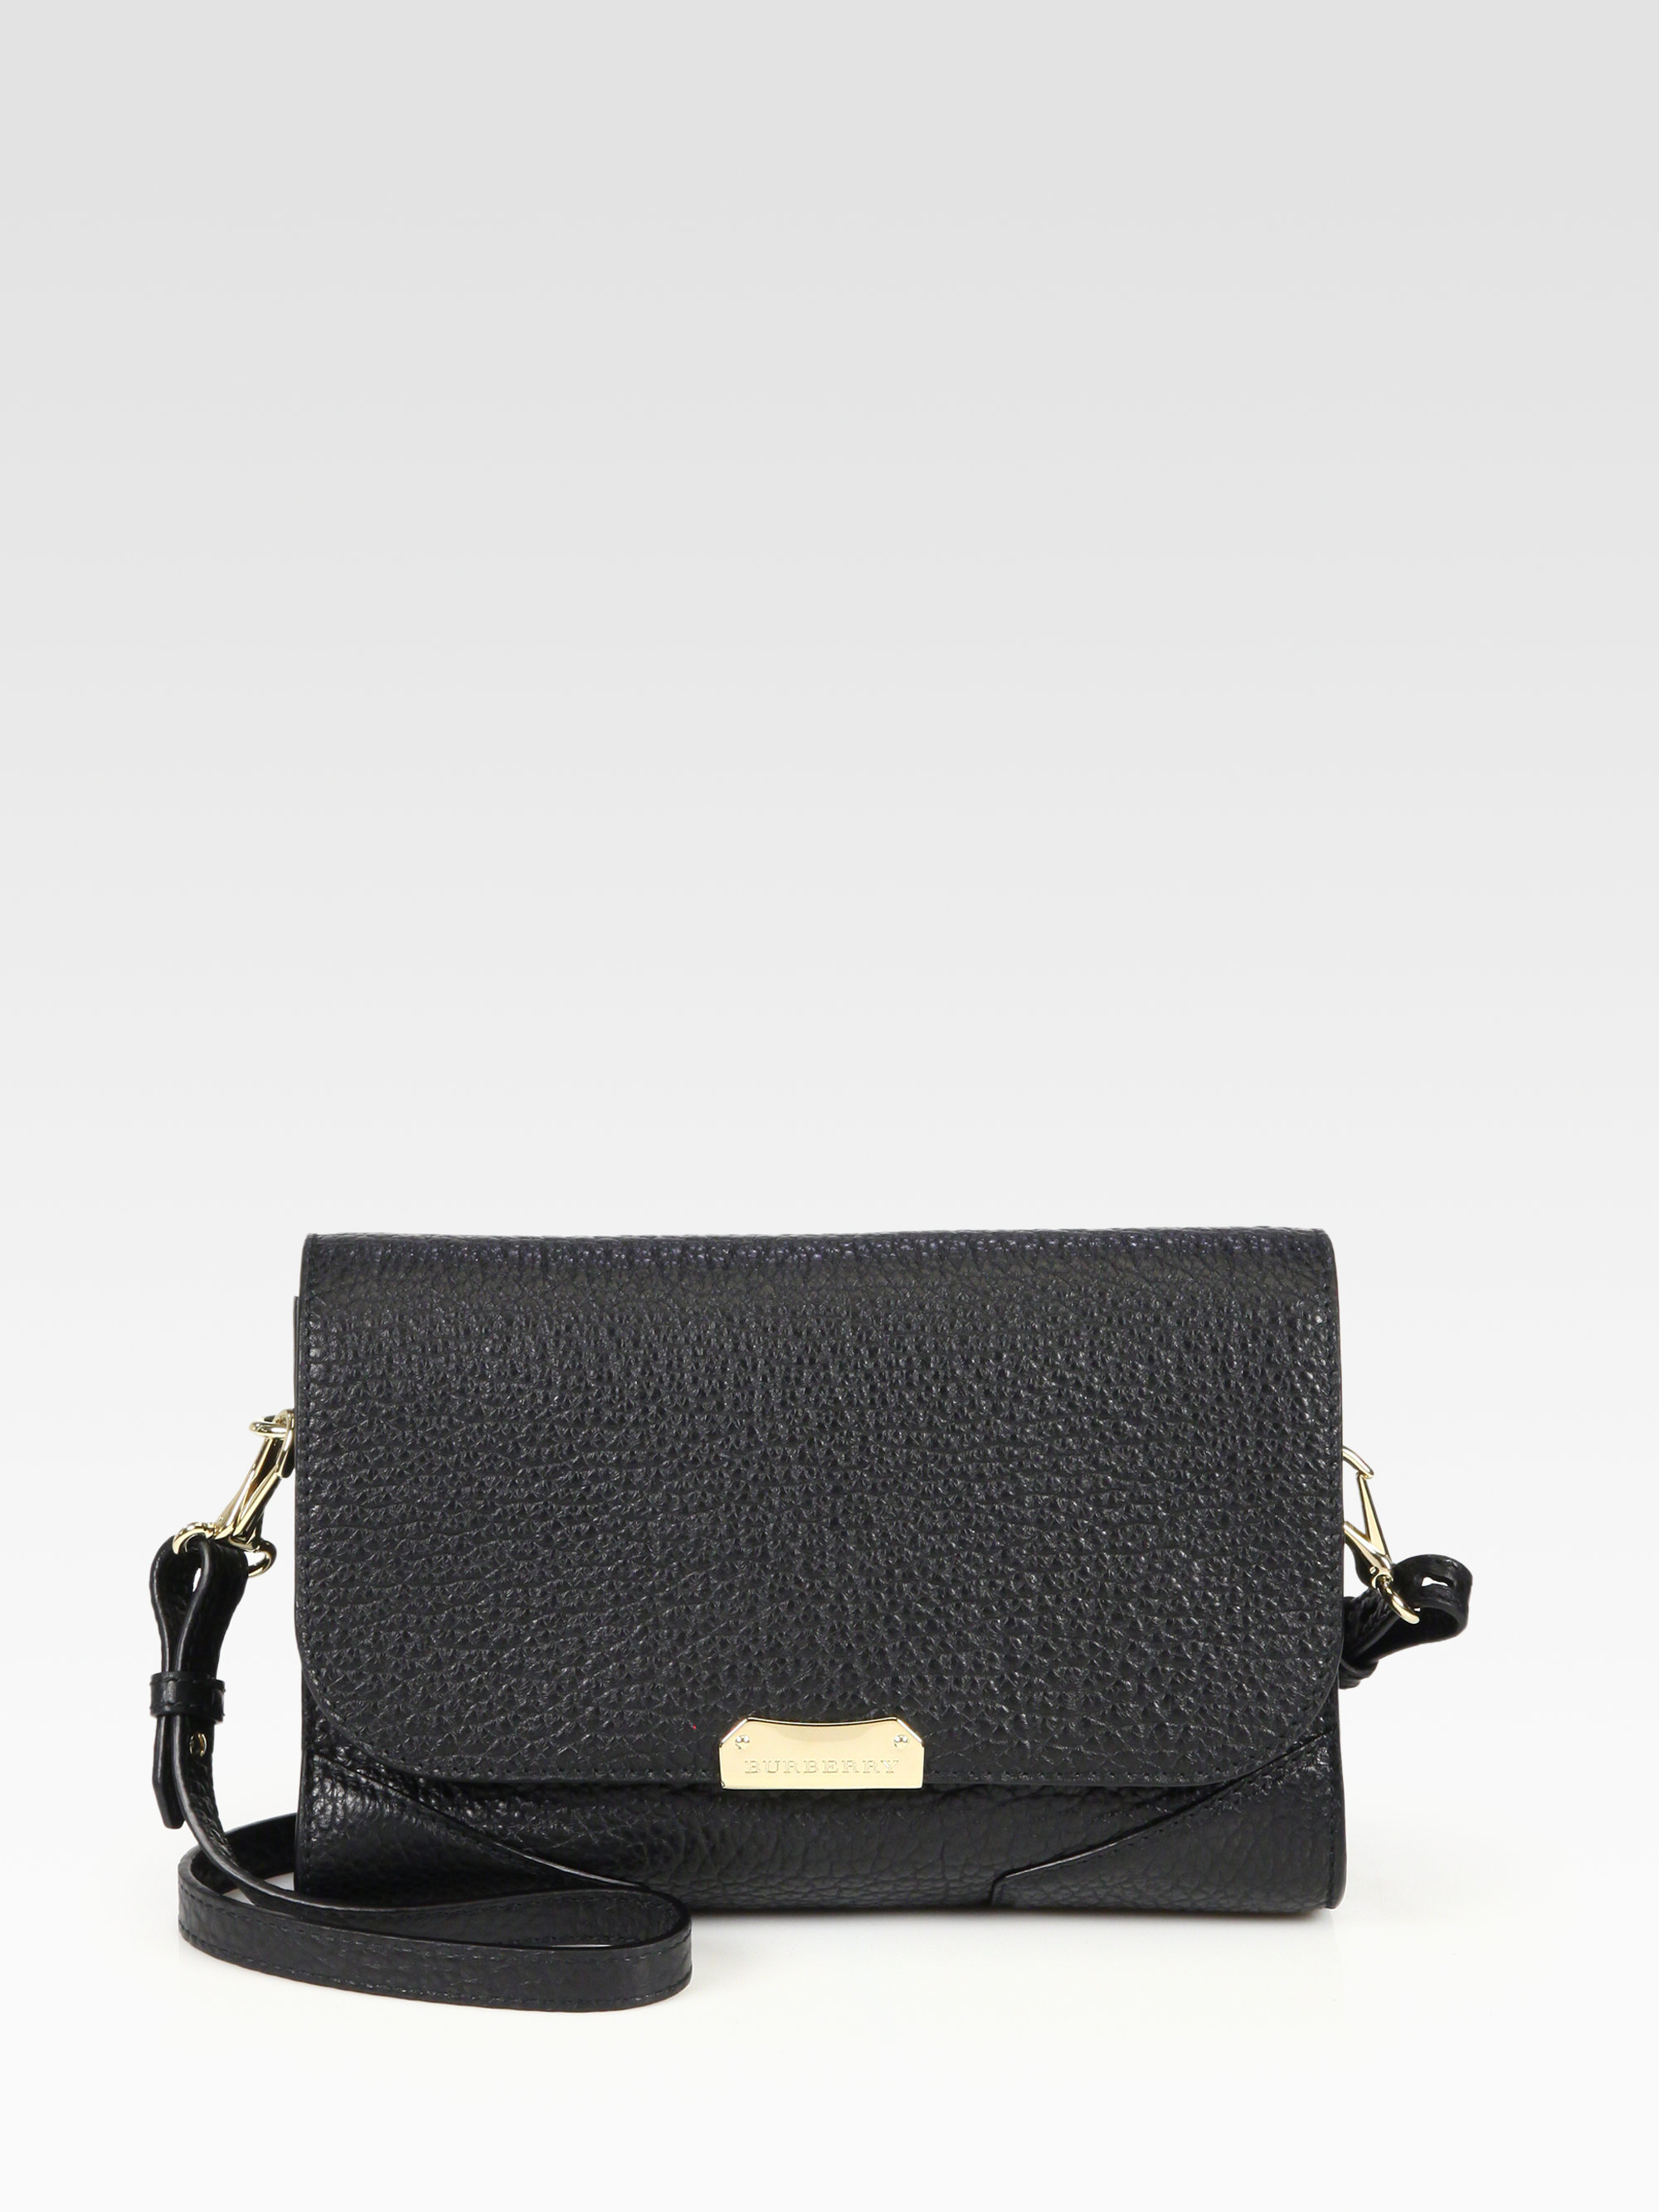 Lyst - Burberry Abbott Small Crossbody Bag in Black 22fe19f98